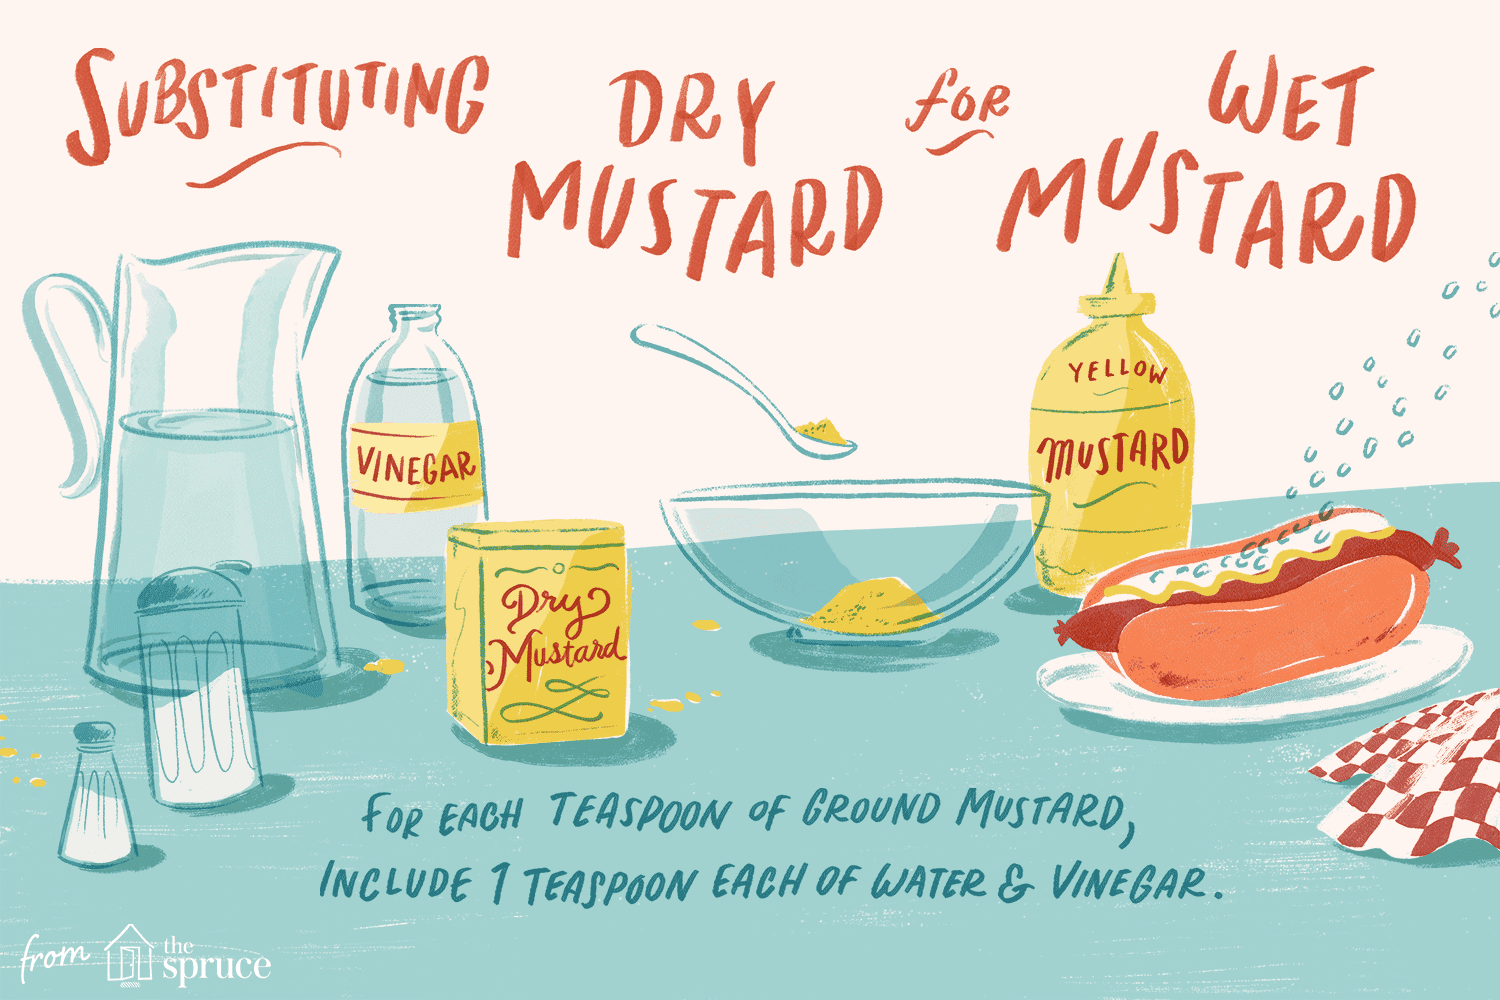 Mustard Substitution Wet for Dry